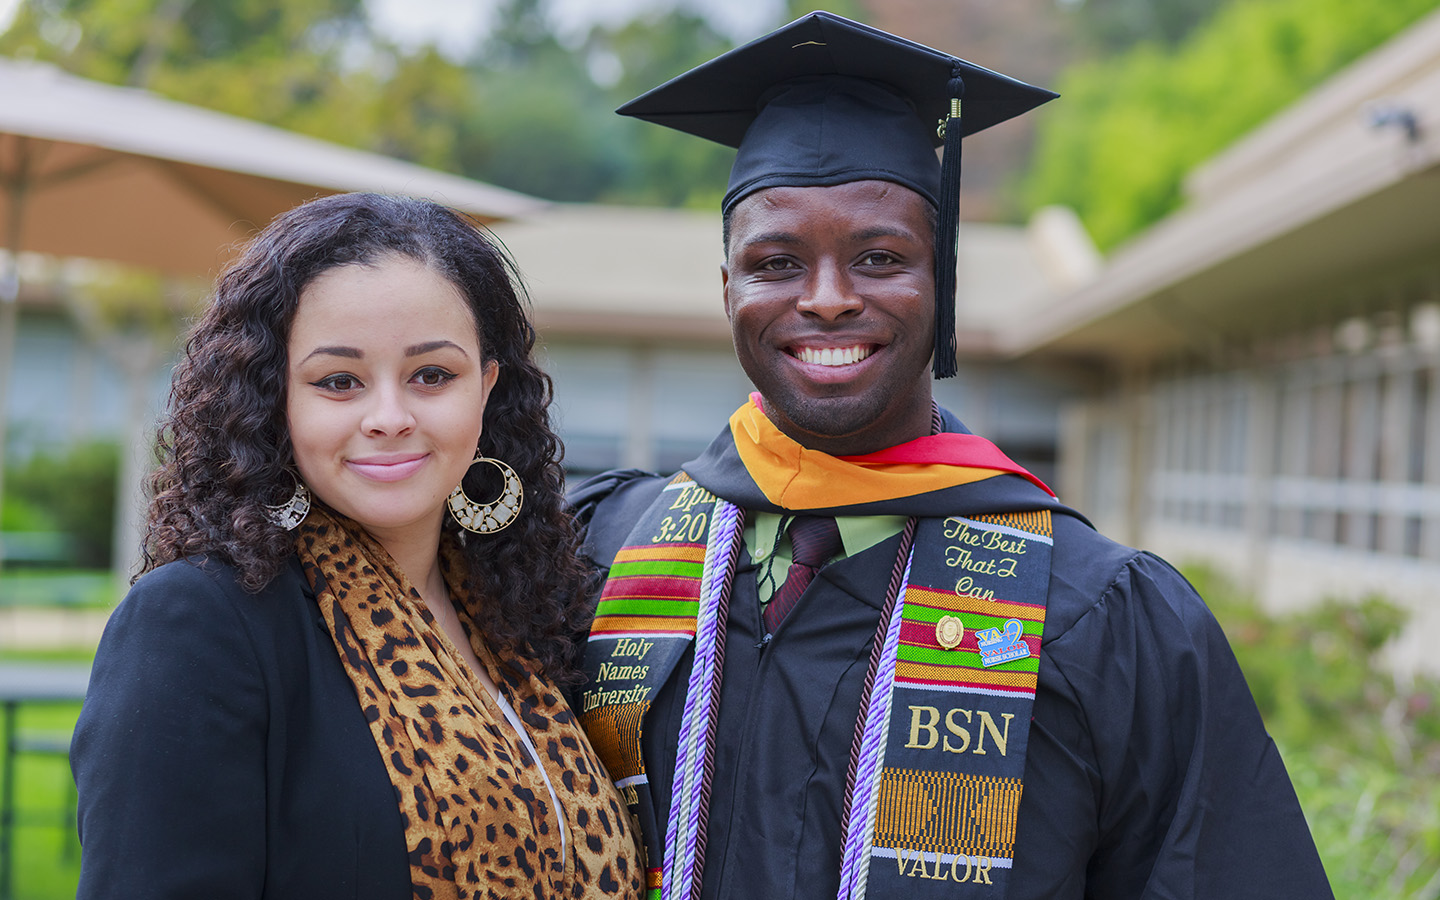 HNU Student posing for photo at commencement ceremony